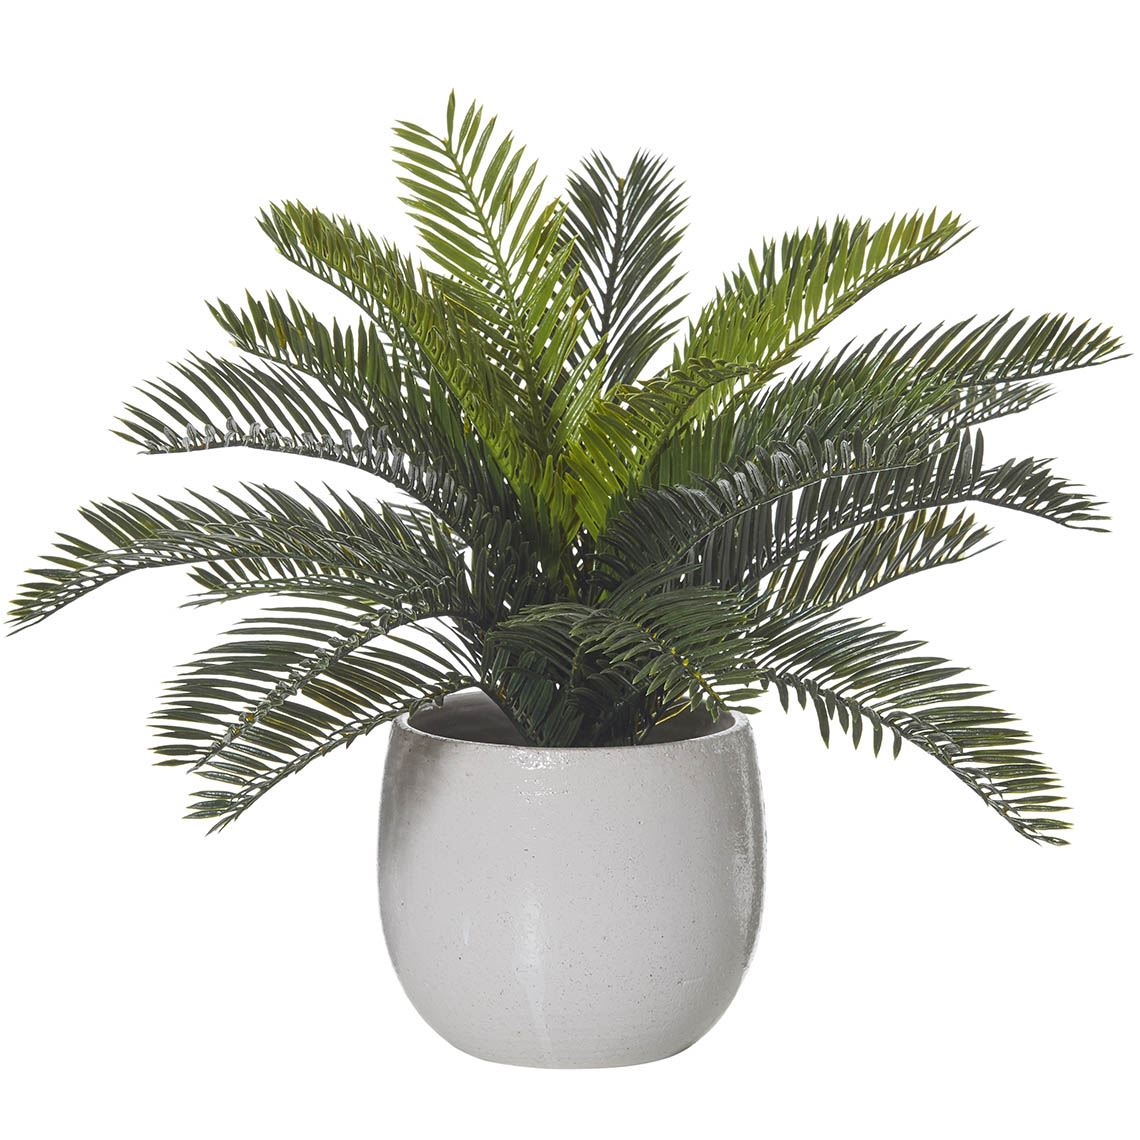 Cycas Bush Artificial Foliage Size W 43cm x D 43cm x H 32cm in Green Plastic/Ceramic Freedom by Freedom, a Plants for sale on Style Sourcebook